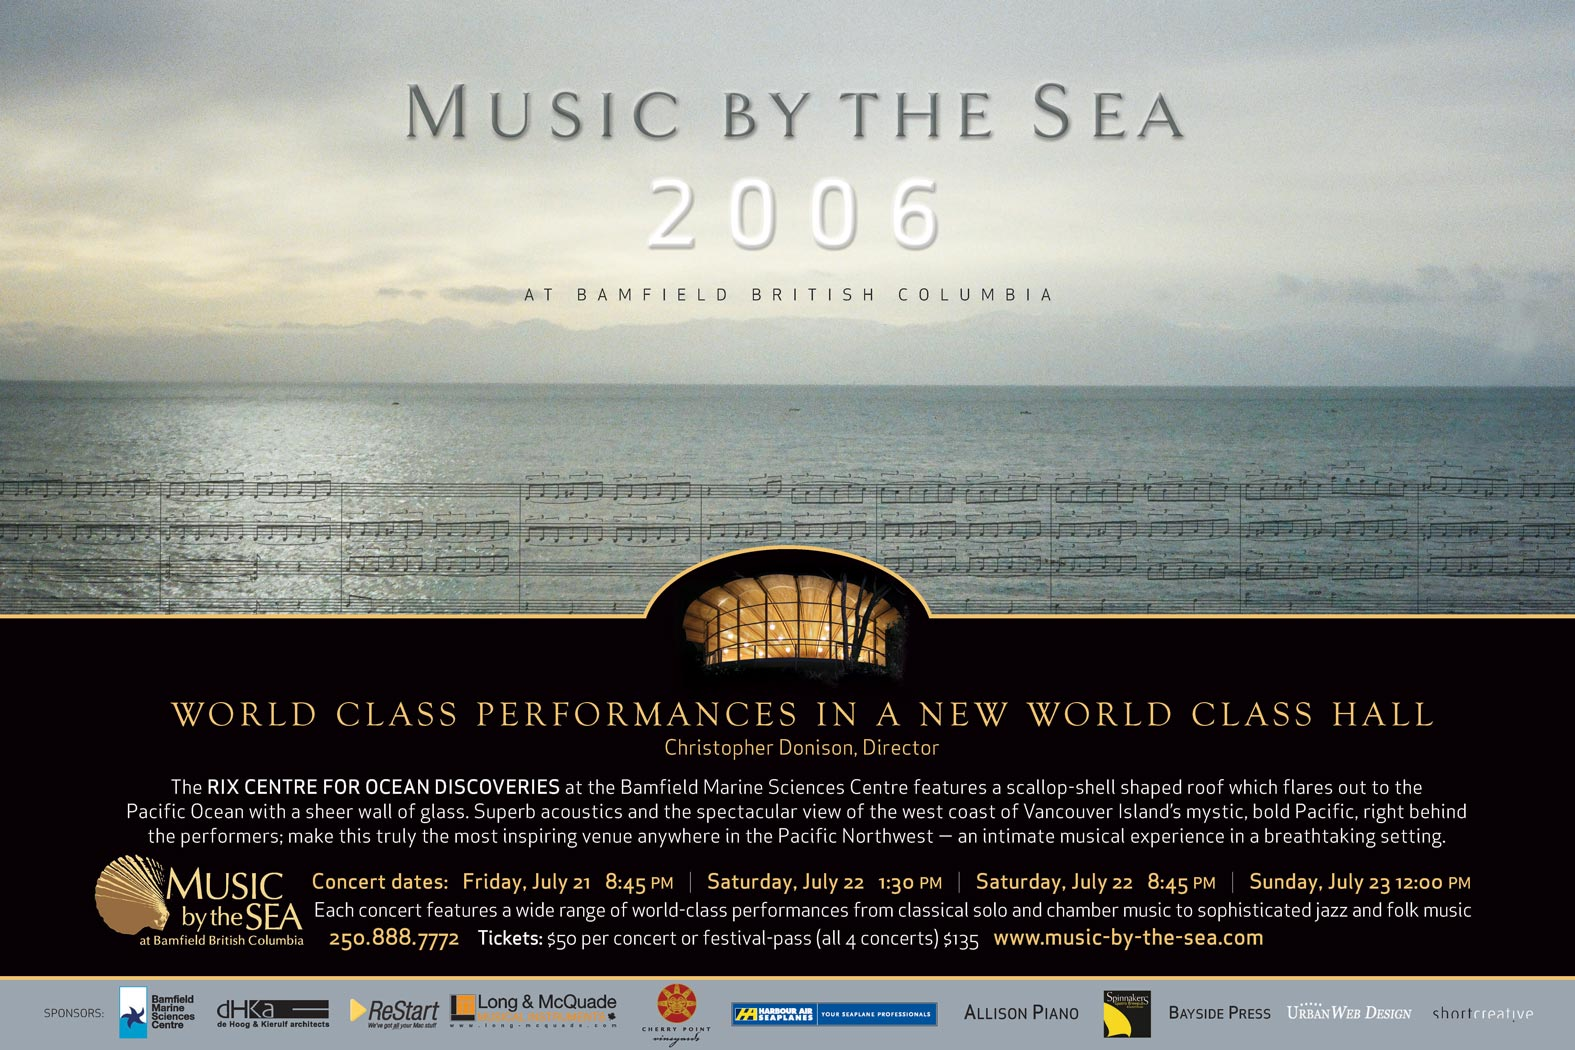 Music by the Sea 2006 poster